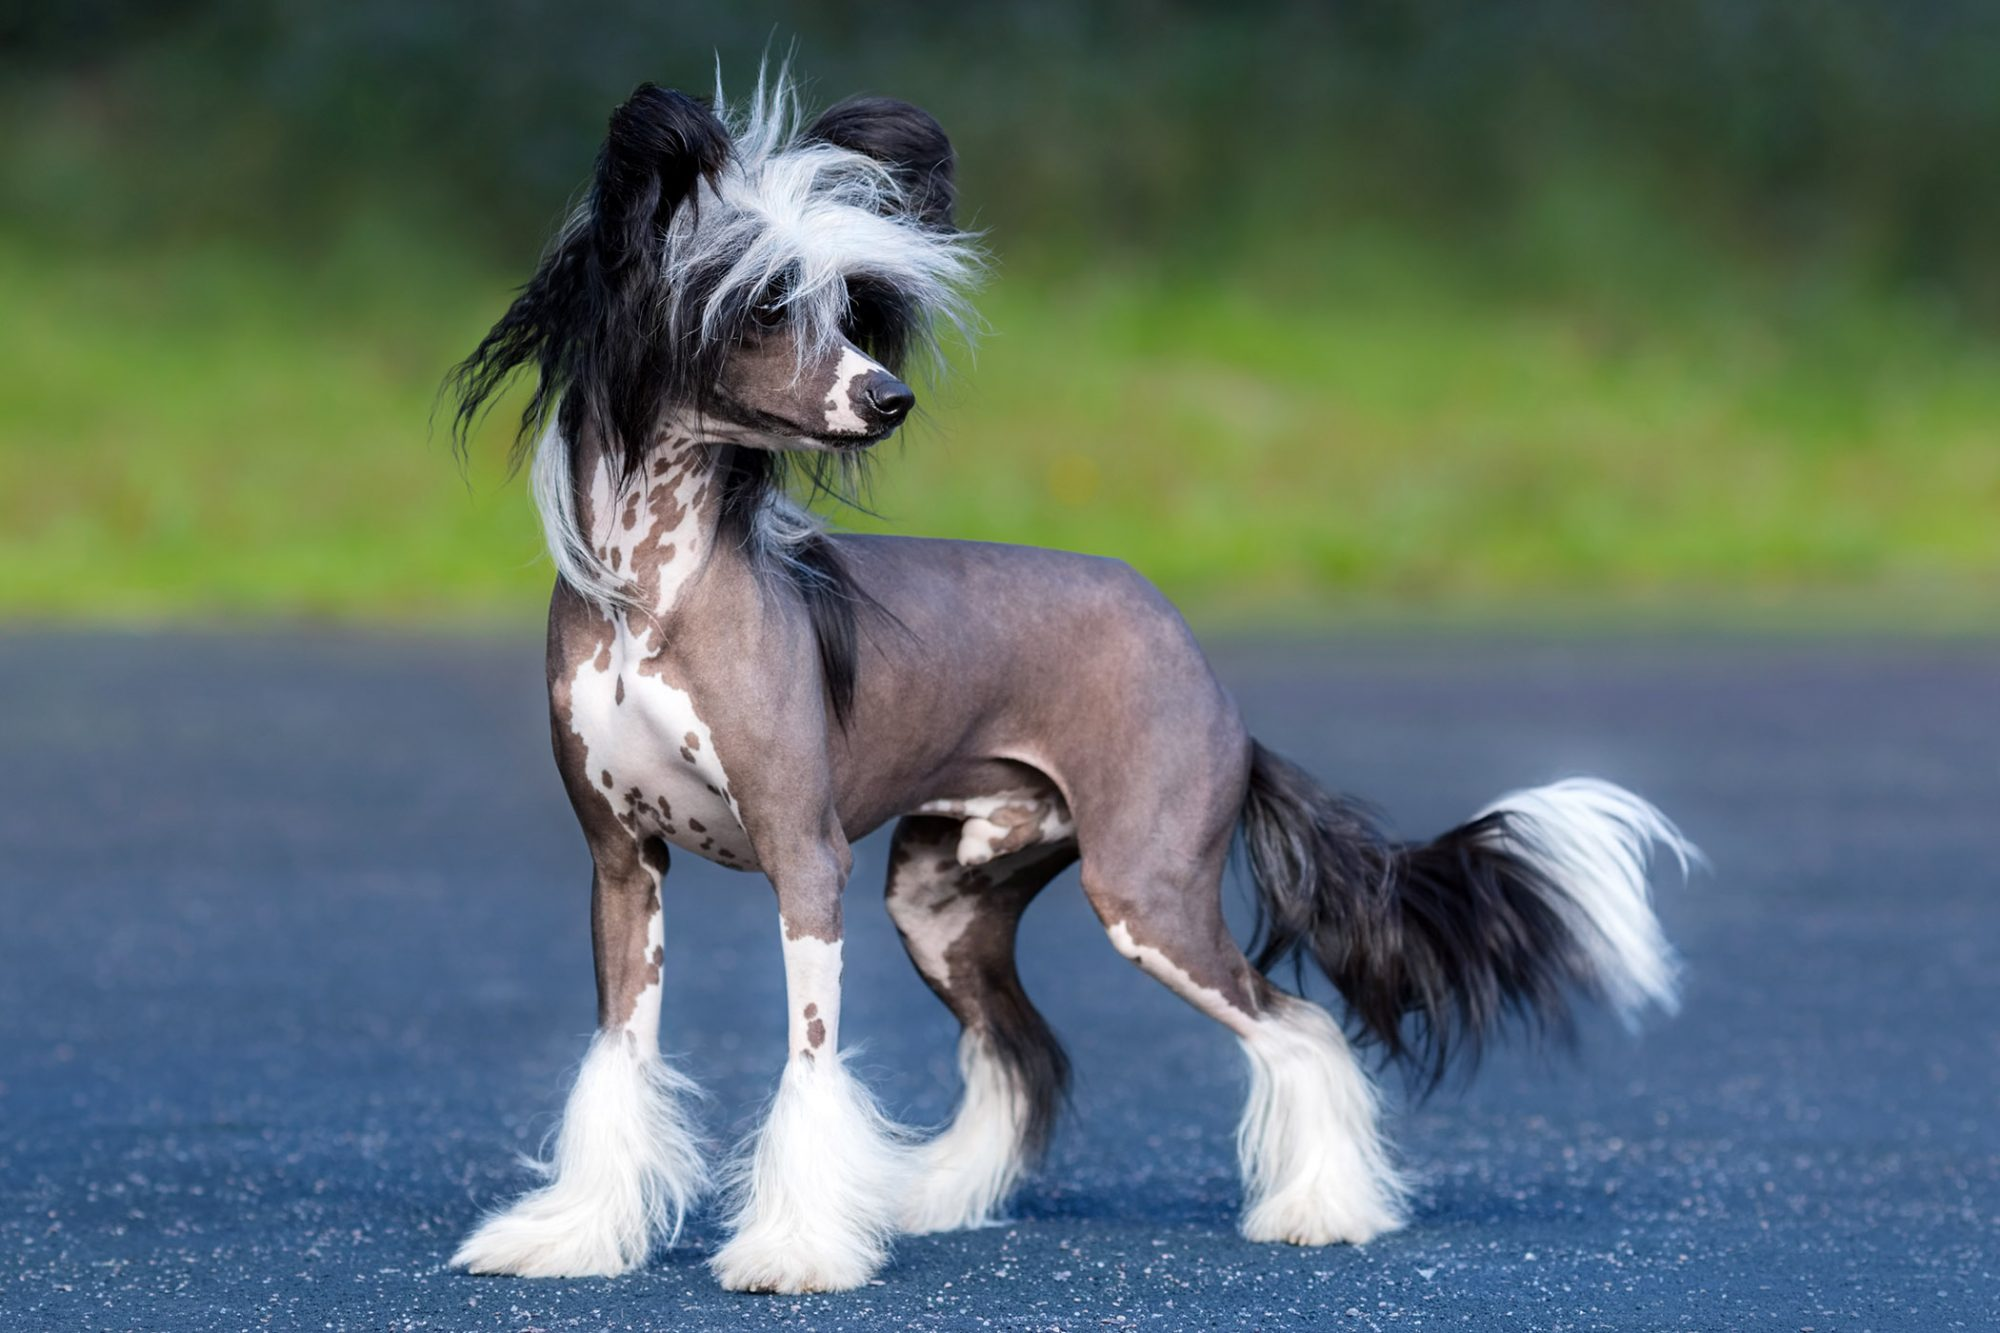 chinese crested dog standing outside